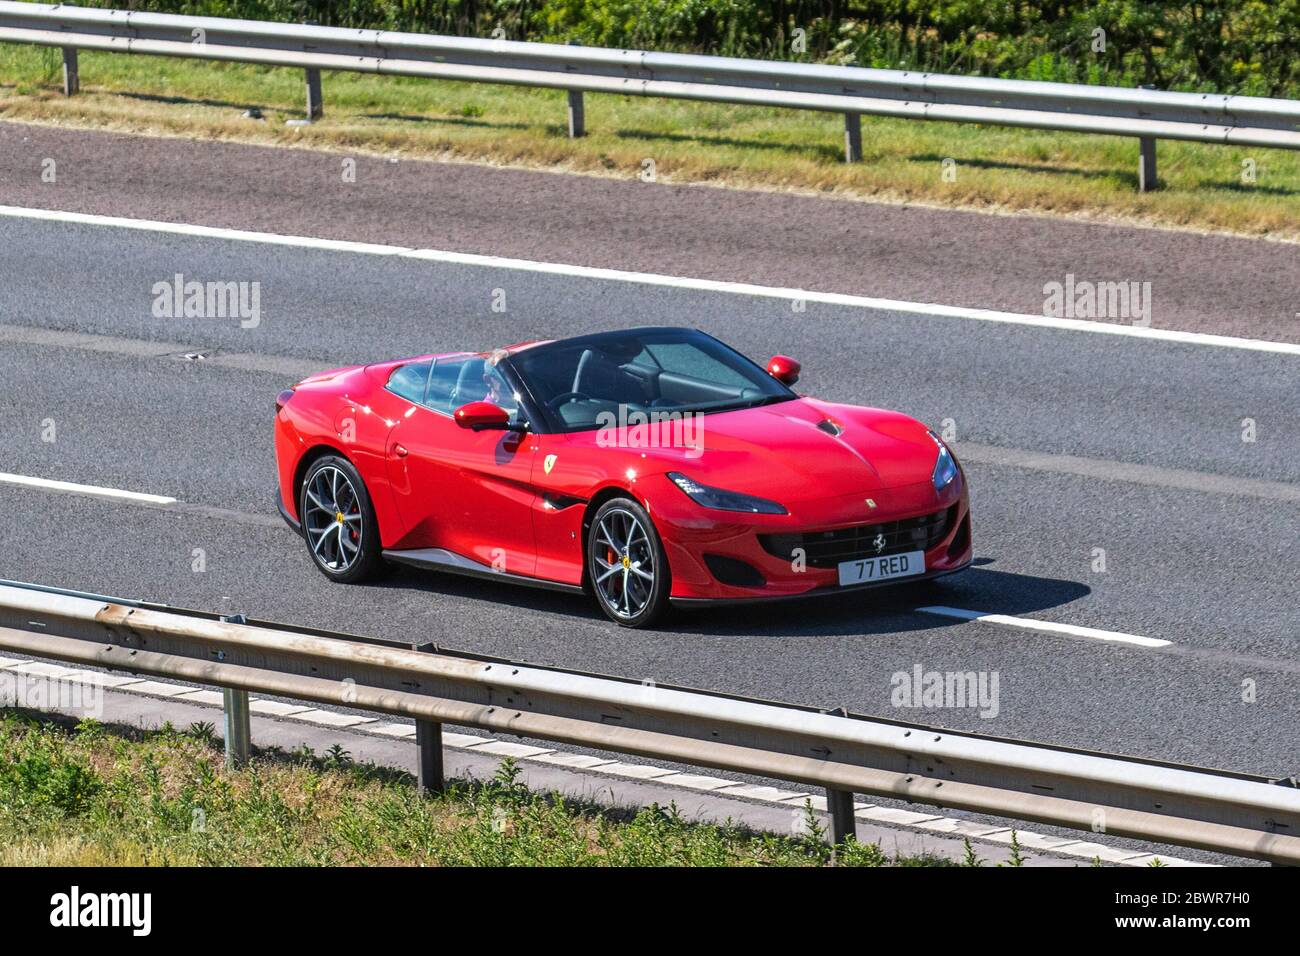 2020 Red Ferrari Portofino S A Vehicular Traffic Moving Vehicles Convertibles Hard Top Convertible Open Topped Roadster